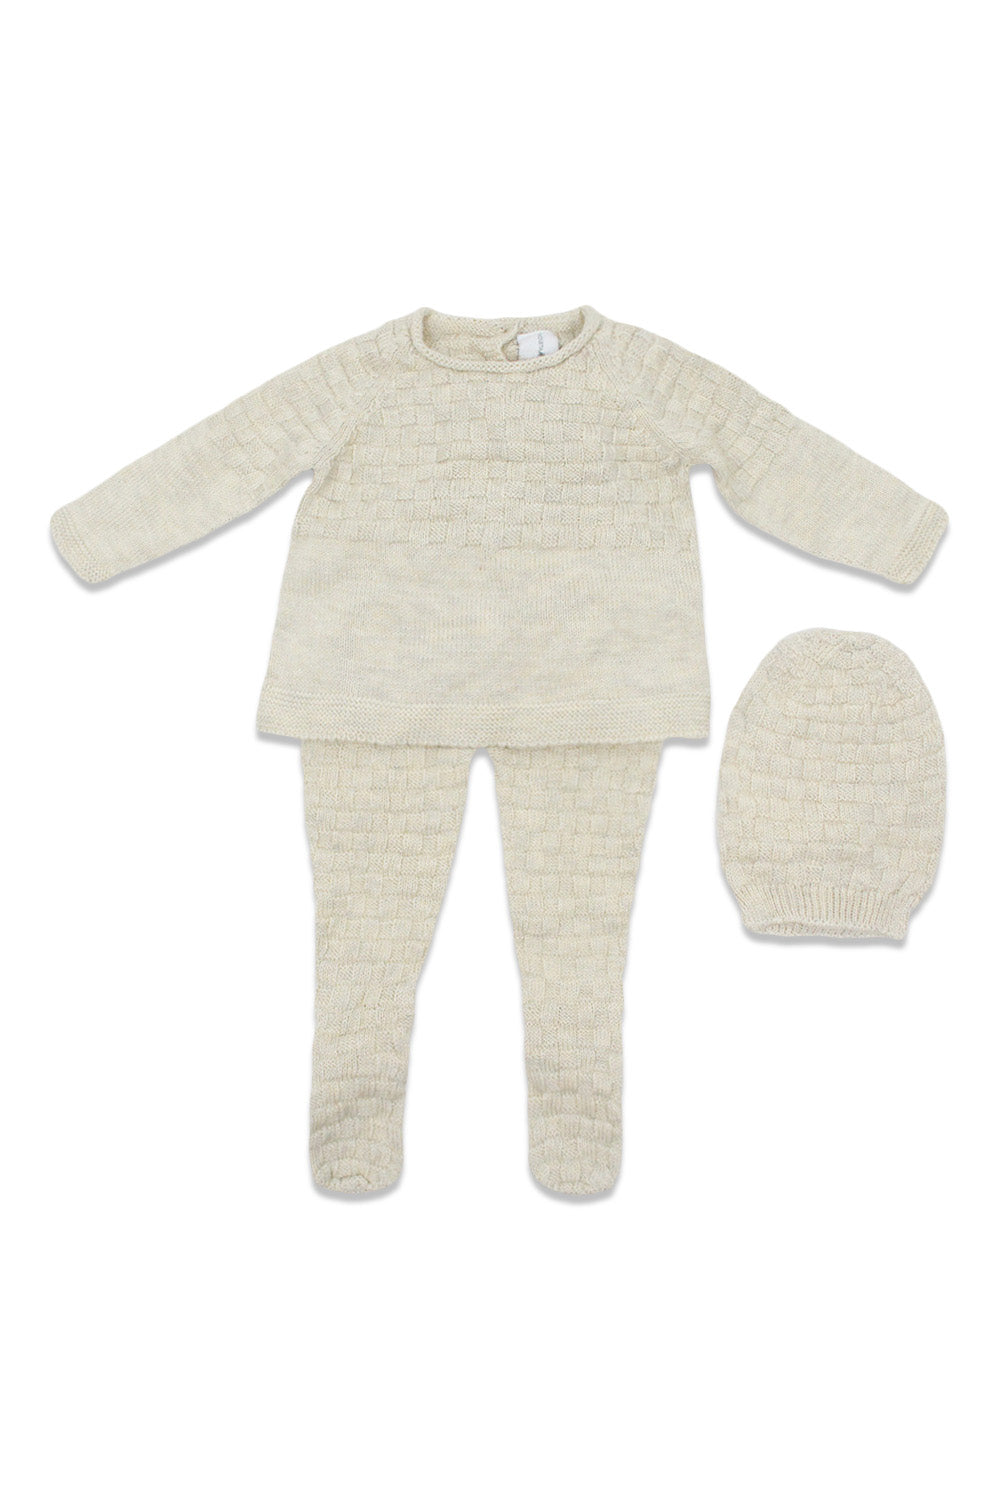 Violeta Bone Knitted Baby Set